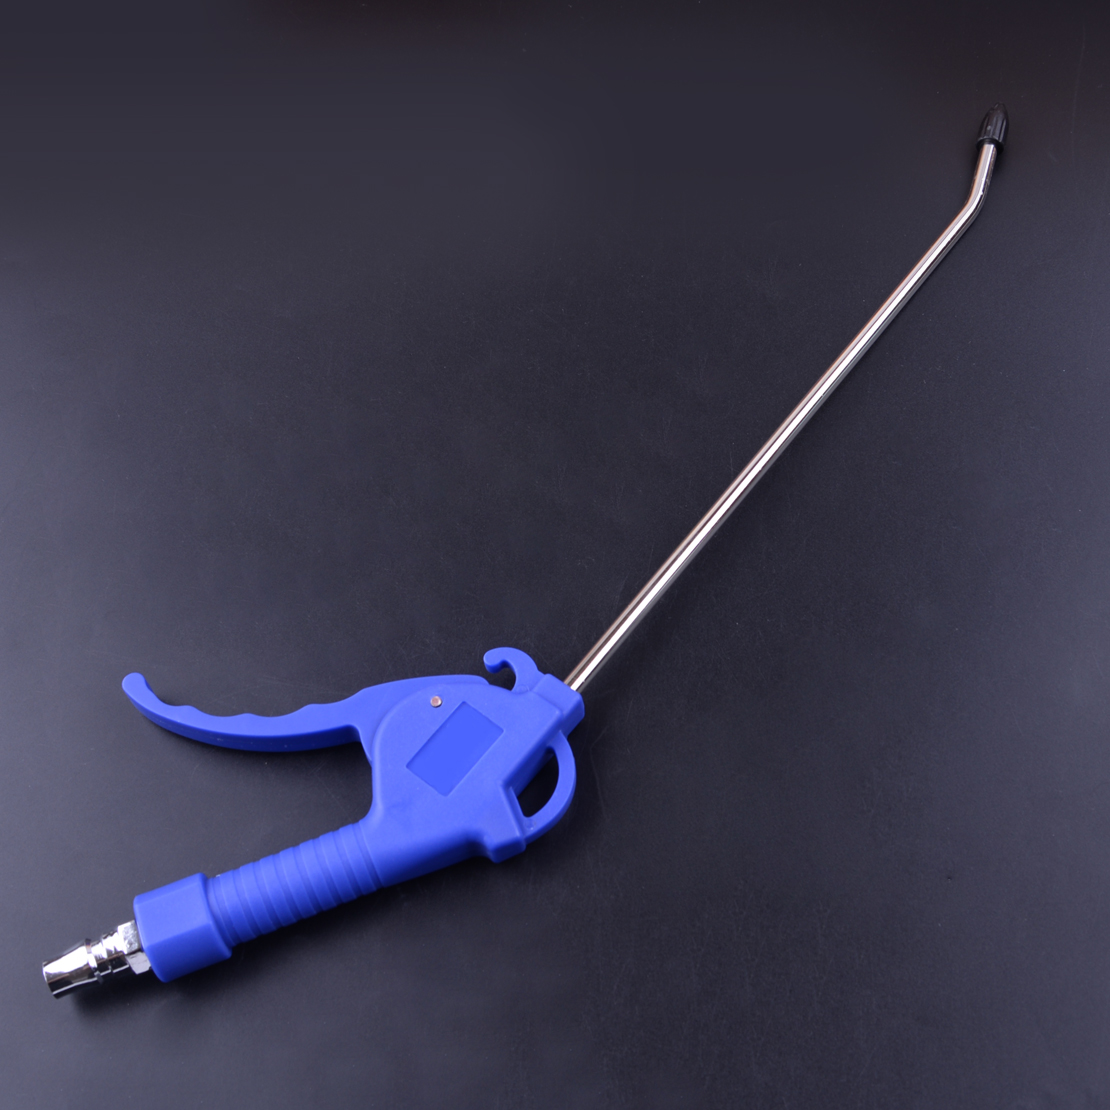 Beler Handle Offset Tip Angle Nozzle Duster Cleaner Air Blow Pistol Grip Dust Blower Tool 2mm For Cleaning Machine Equipment